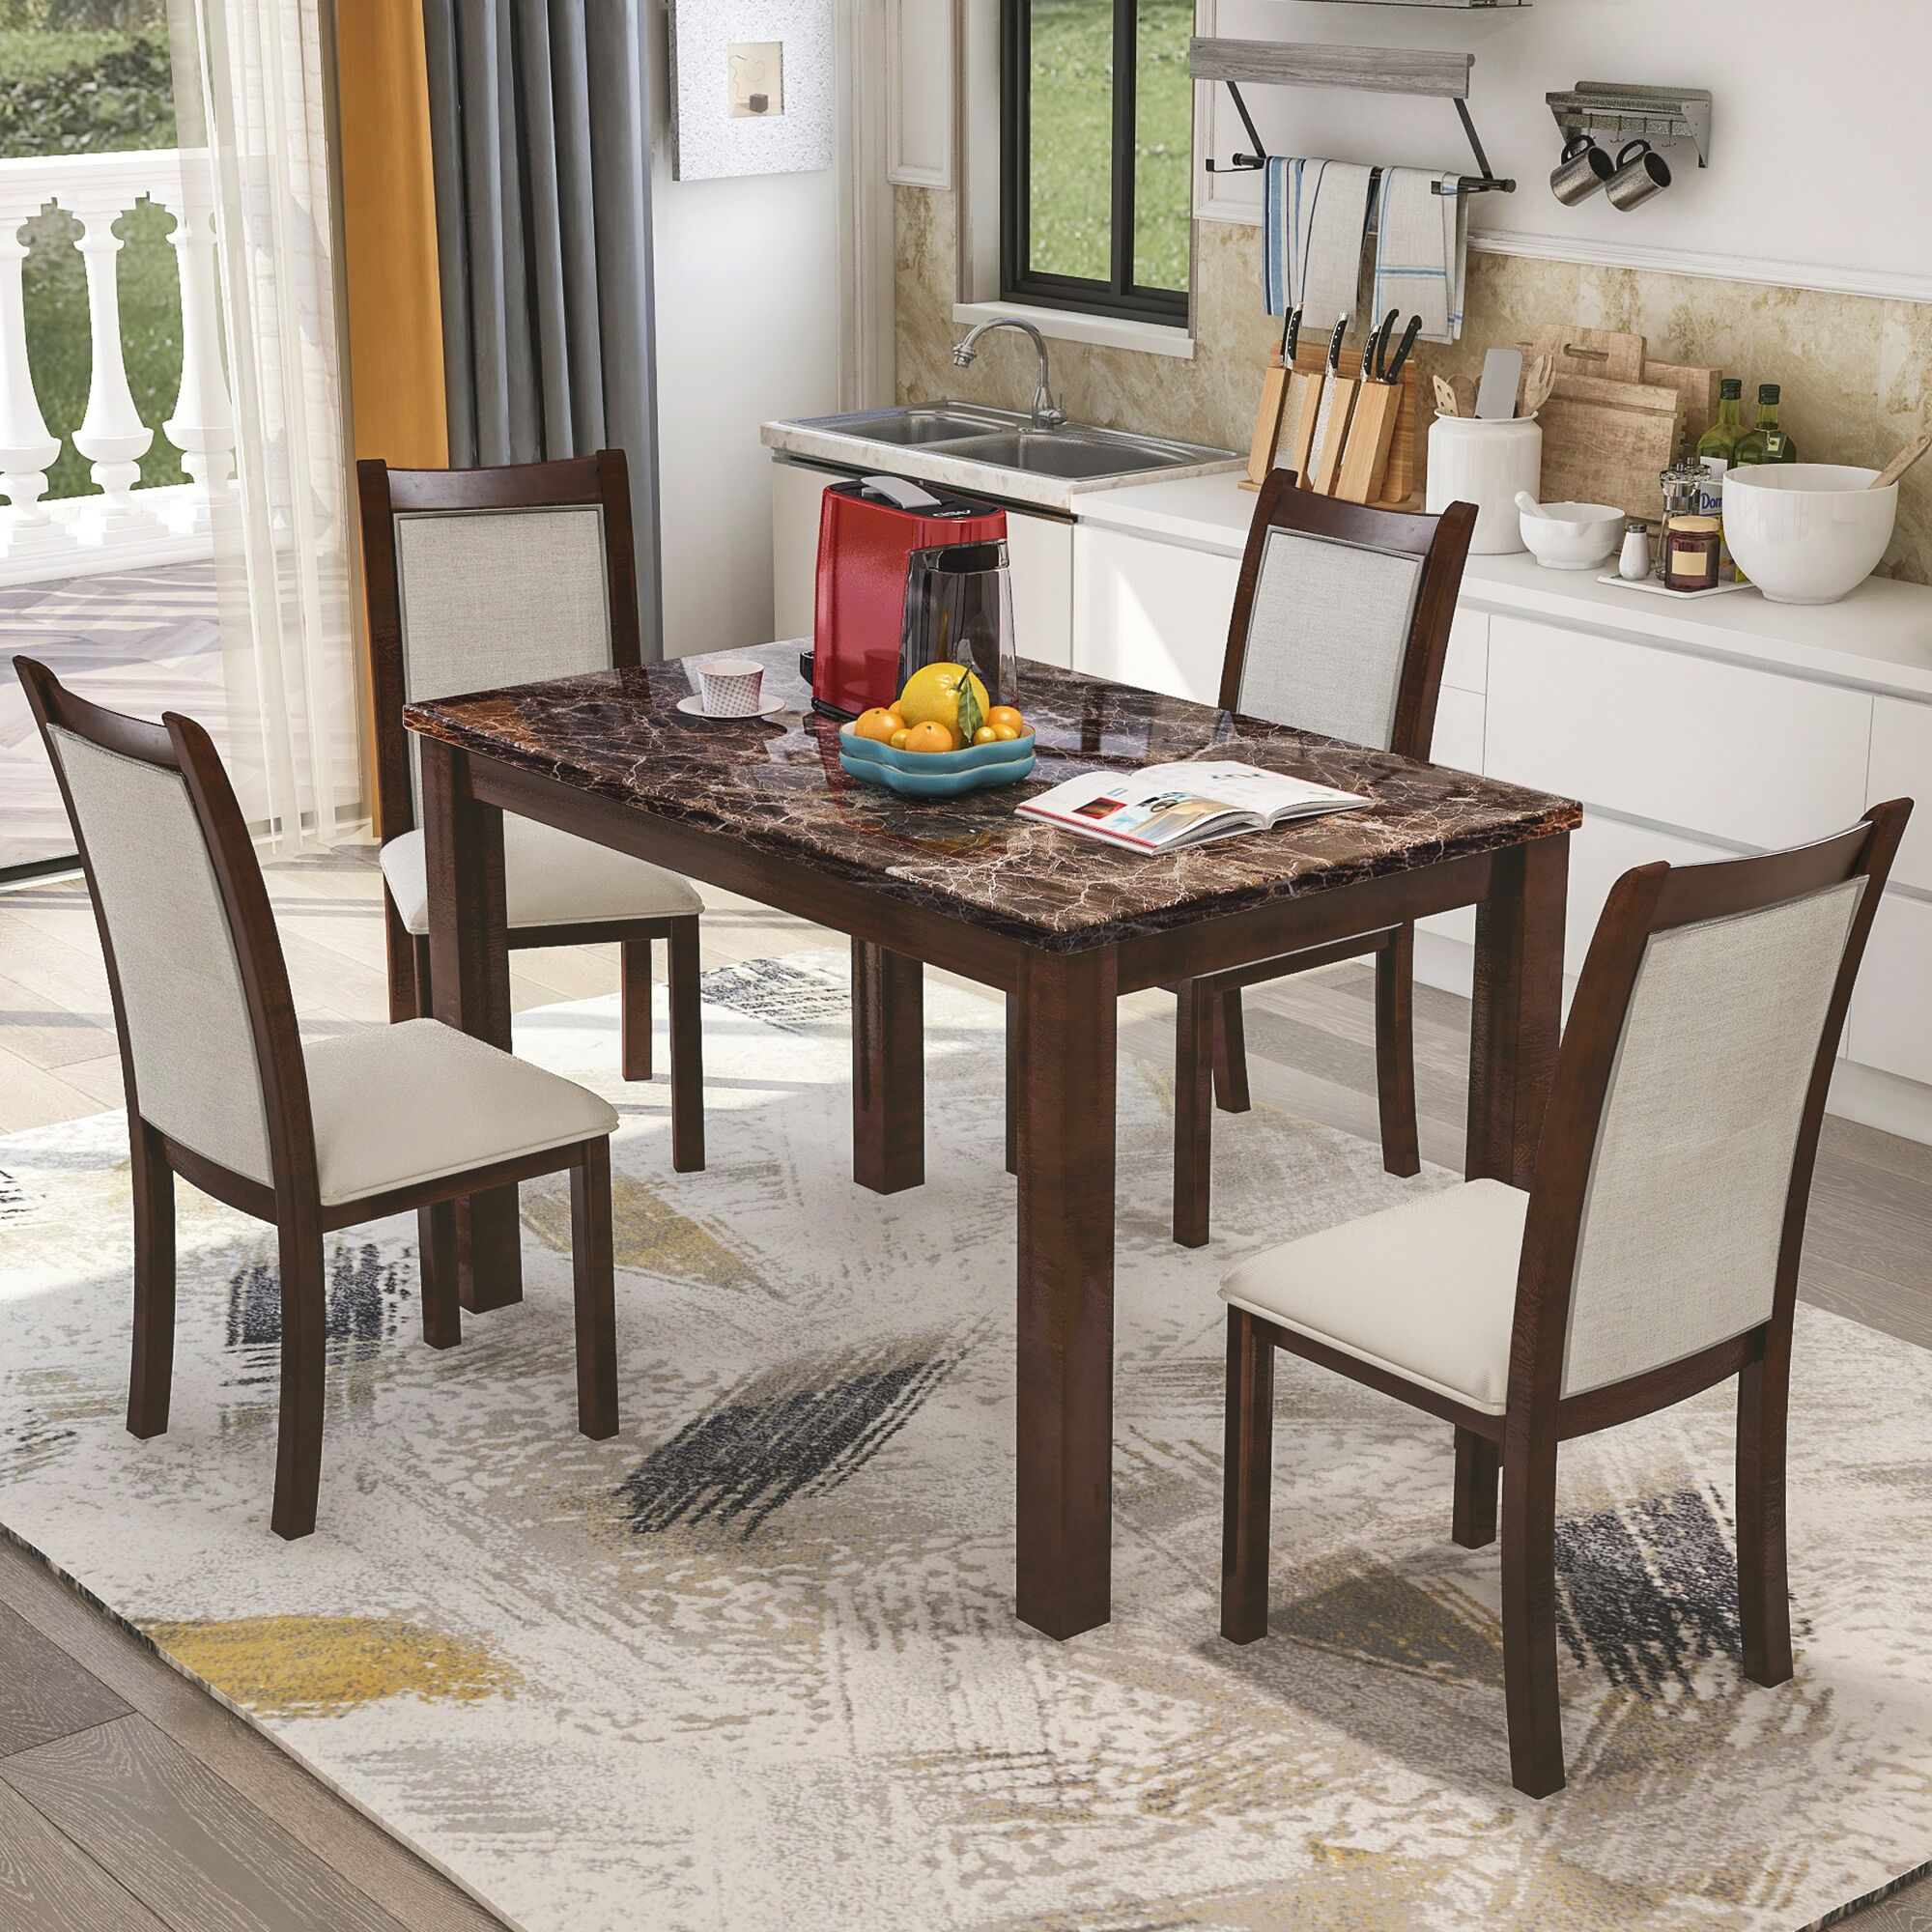 Dining Table Designs Harper Bright Designs Dining Kitchen Table Set With Chairs 5 Piece Dining Table Set